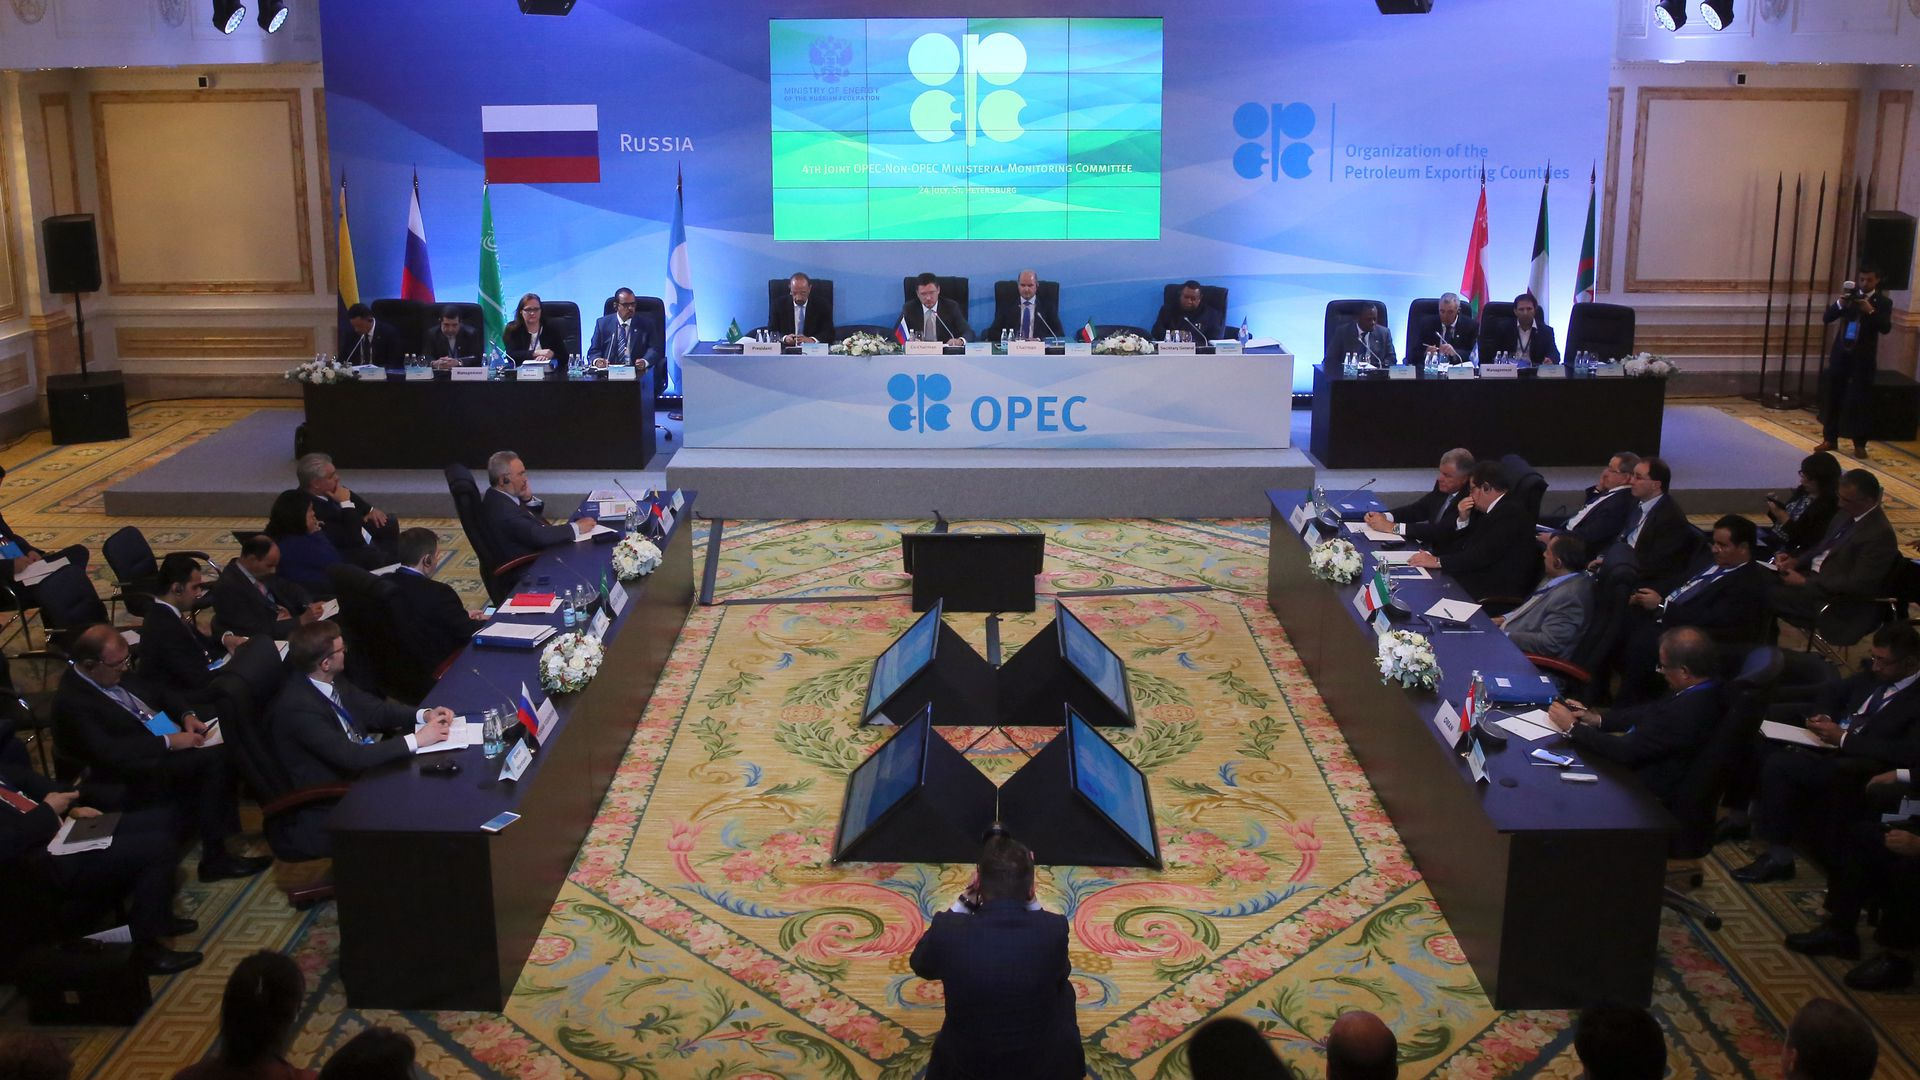 An OPEC meeting in St Petersburg, Russia in 2017